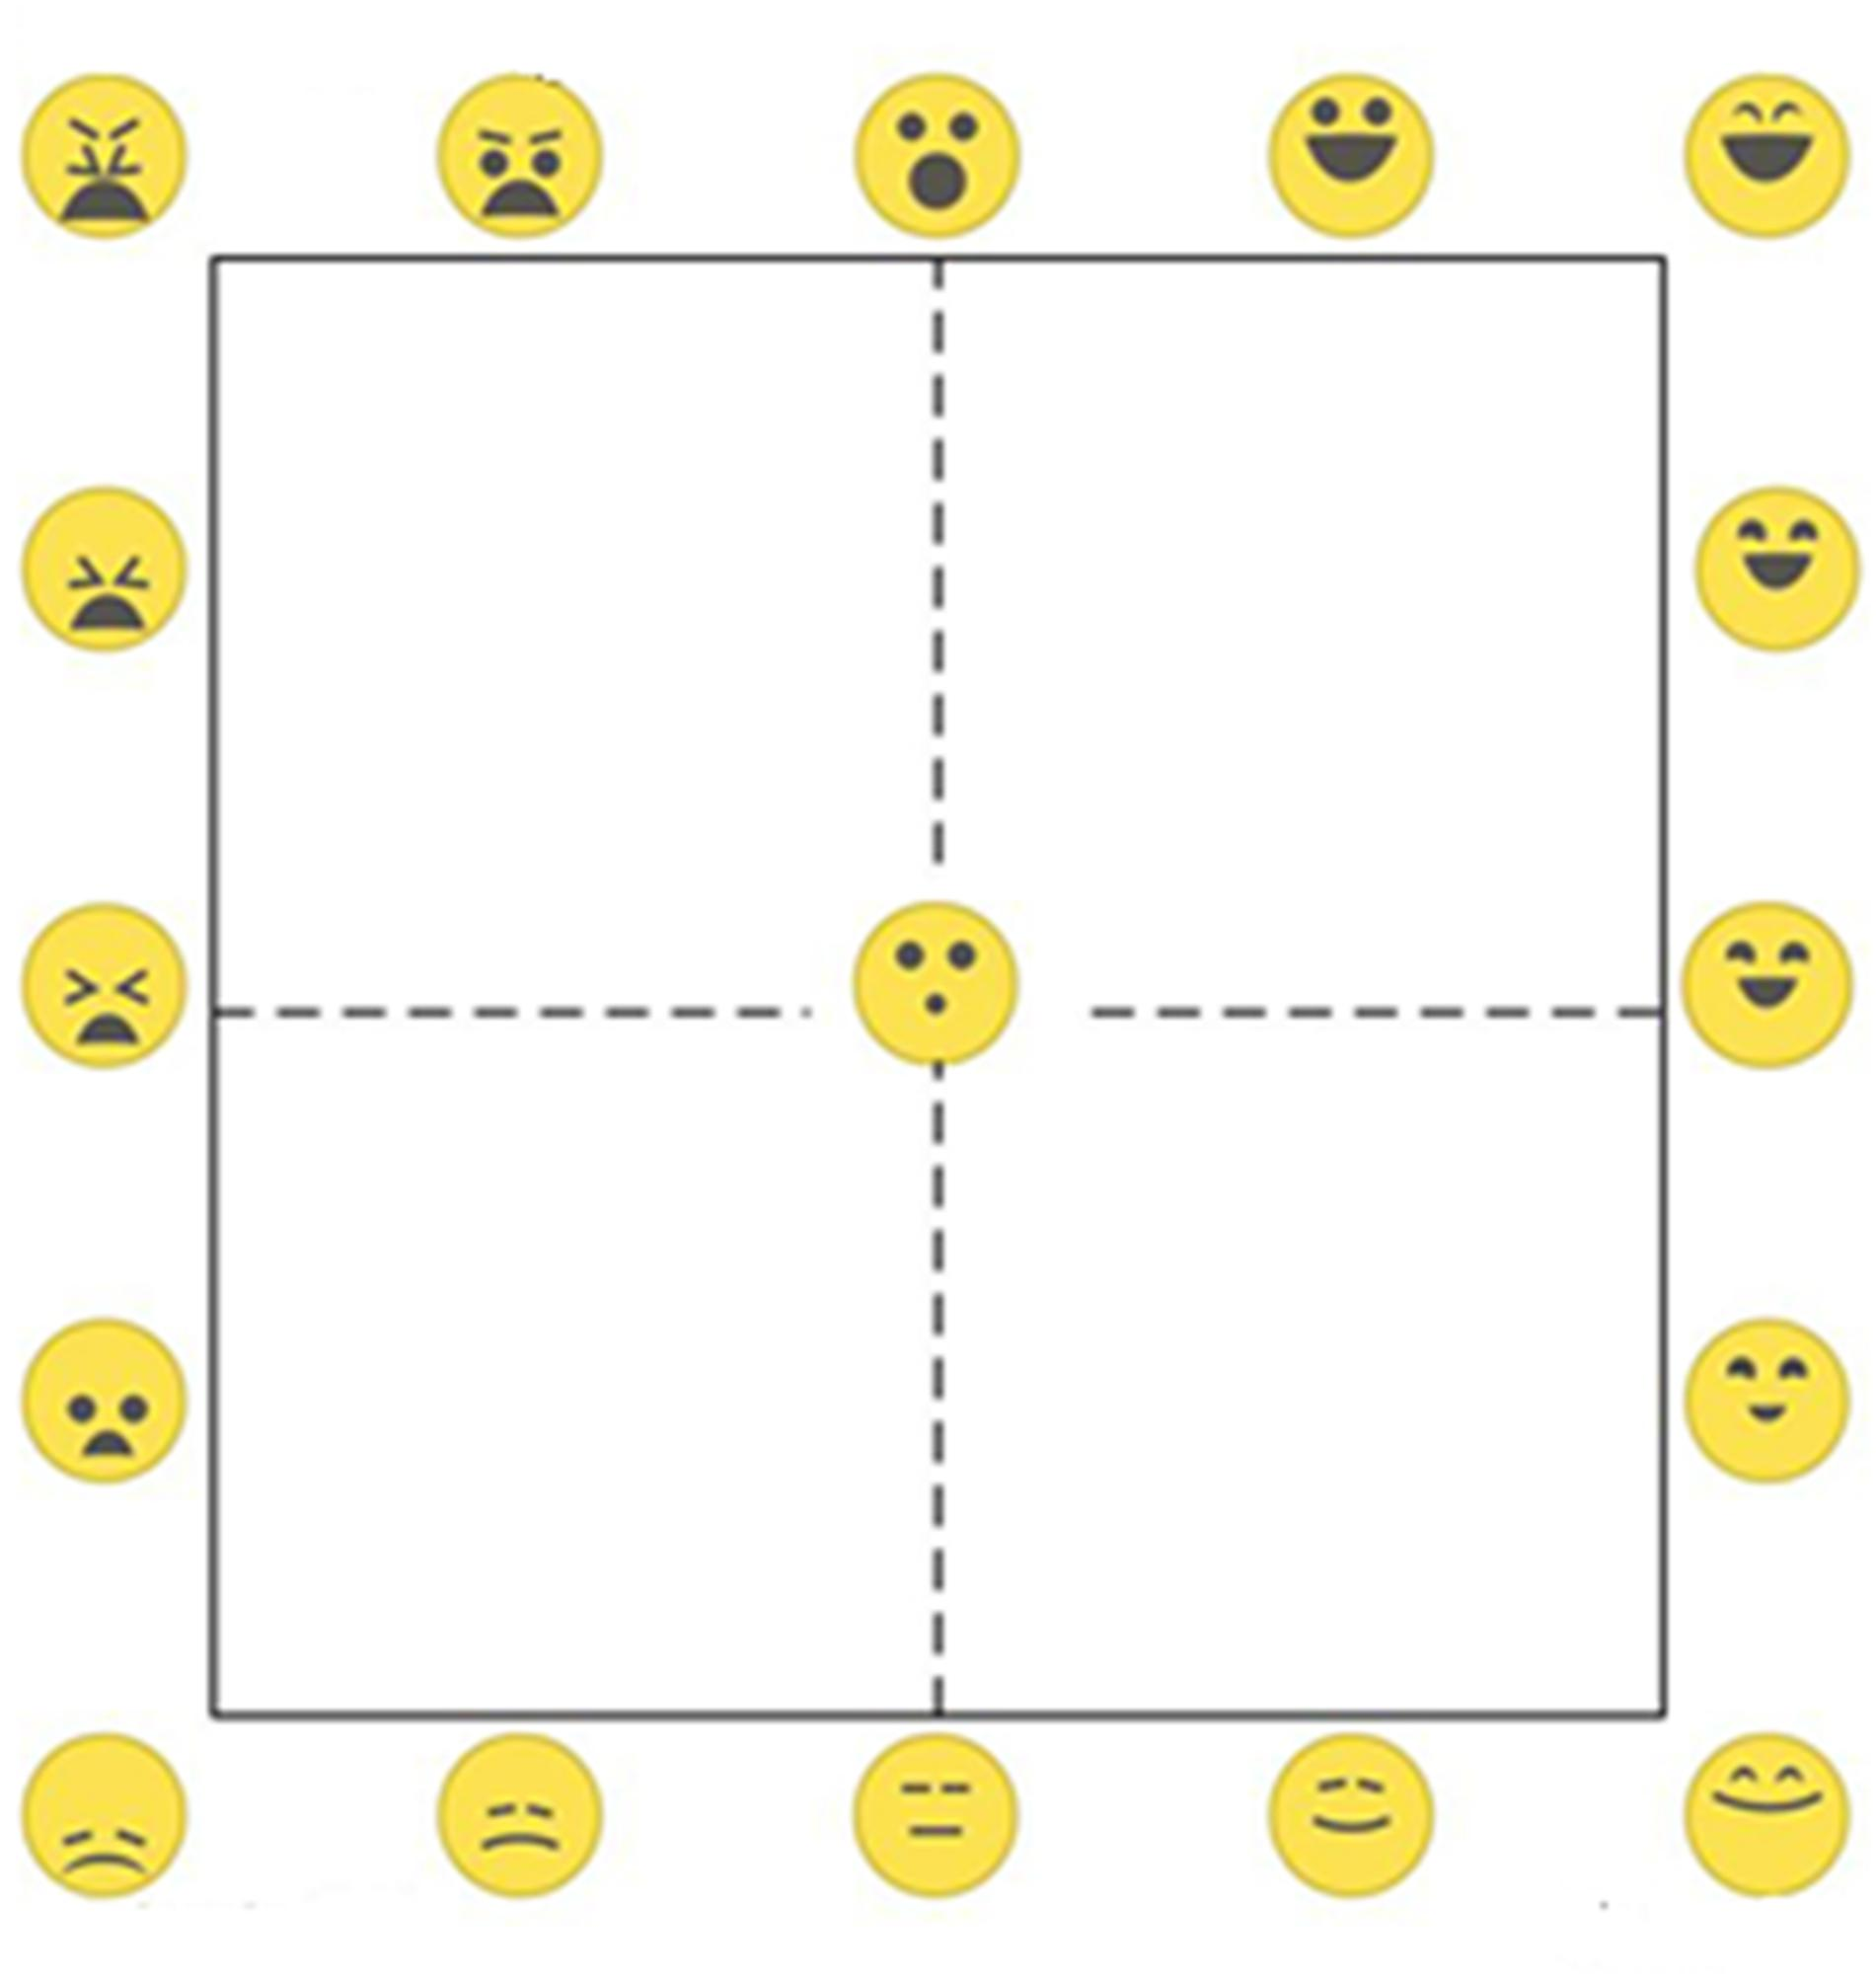 Frontiers | EmojiGrid: A 2D Pictorial Scale for the Assessment of